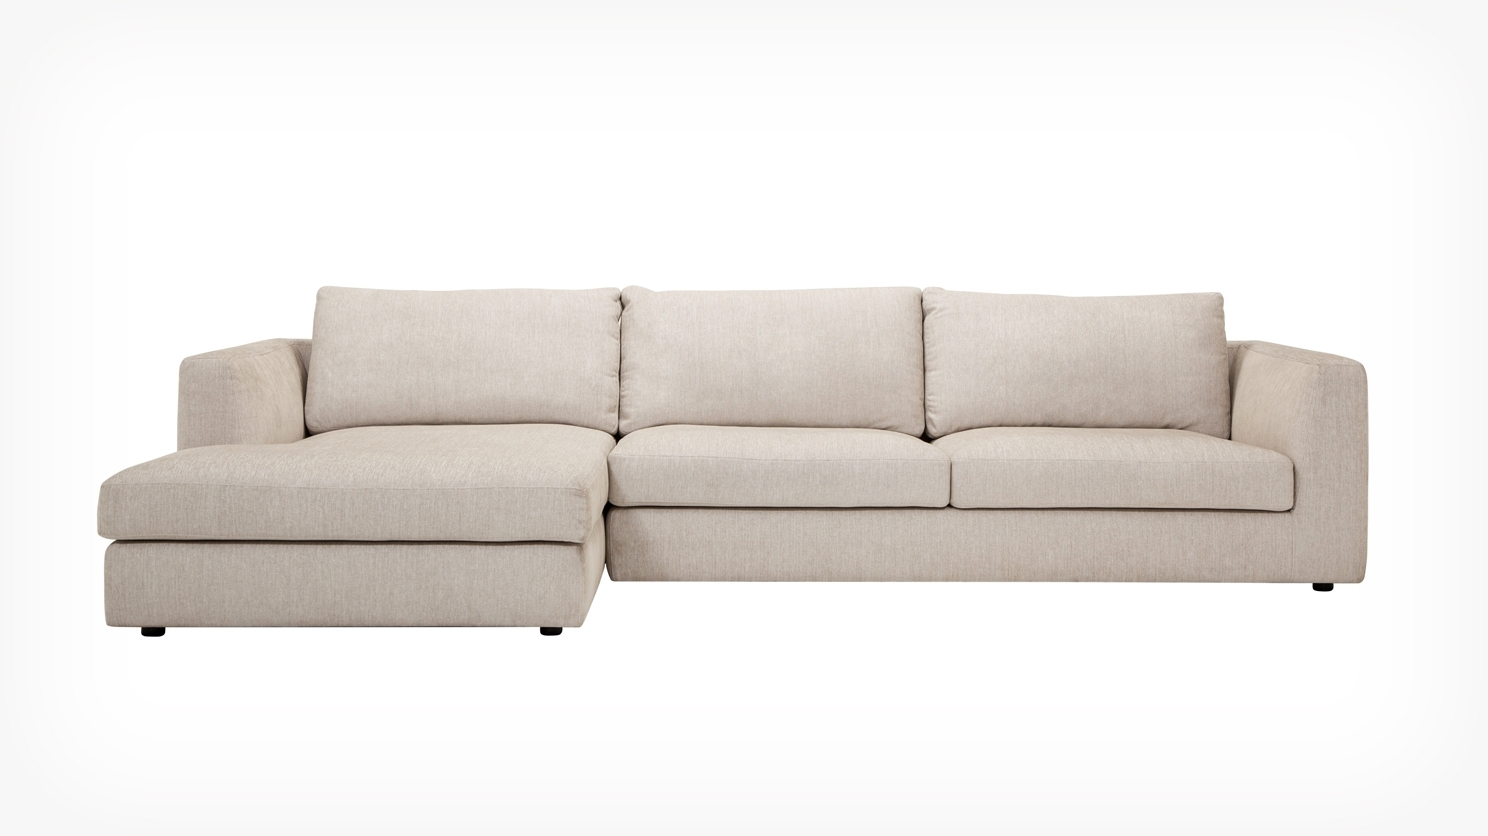 Eq3 Sectional Sofas For Popular Eq (View 4 of 15)